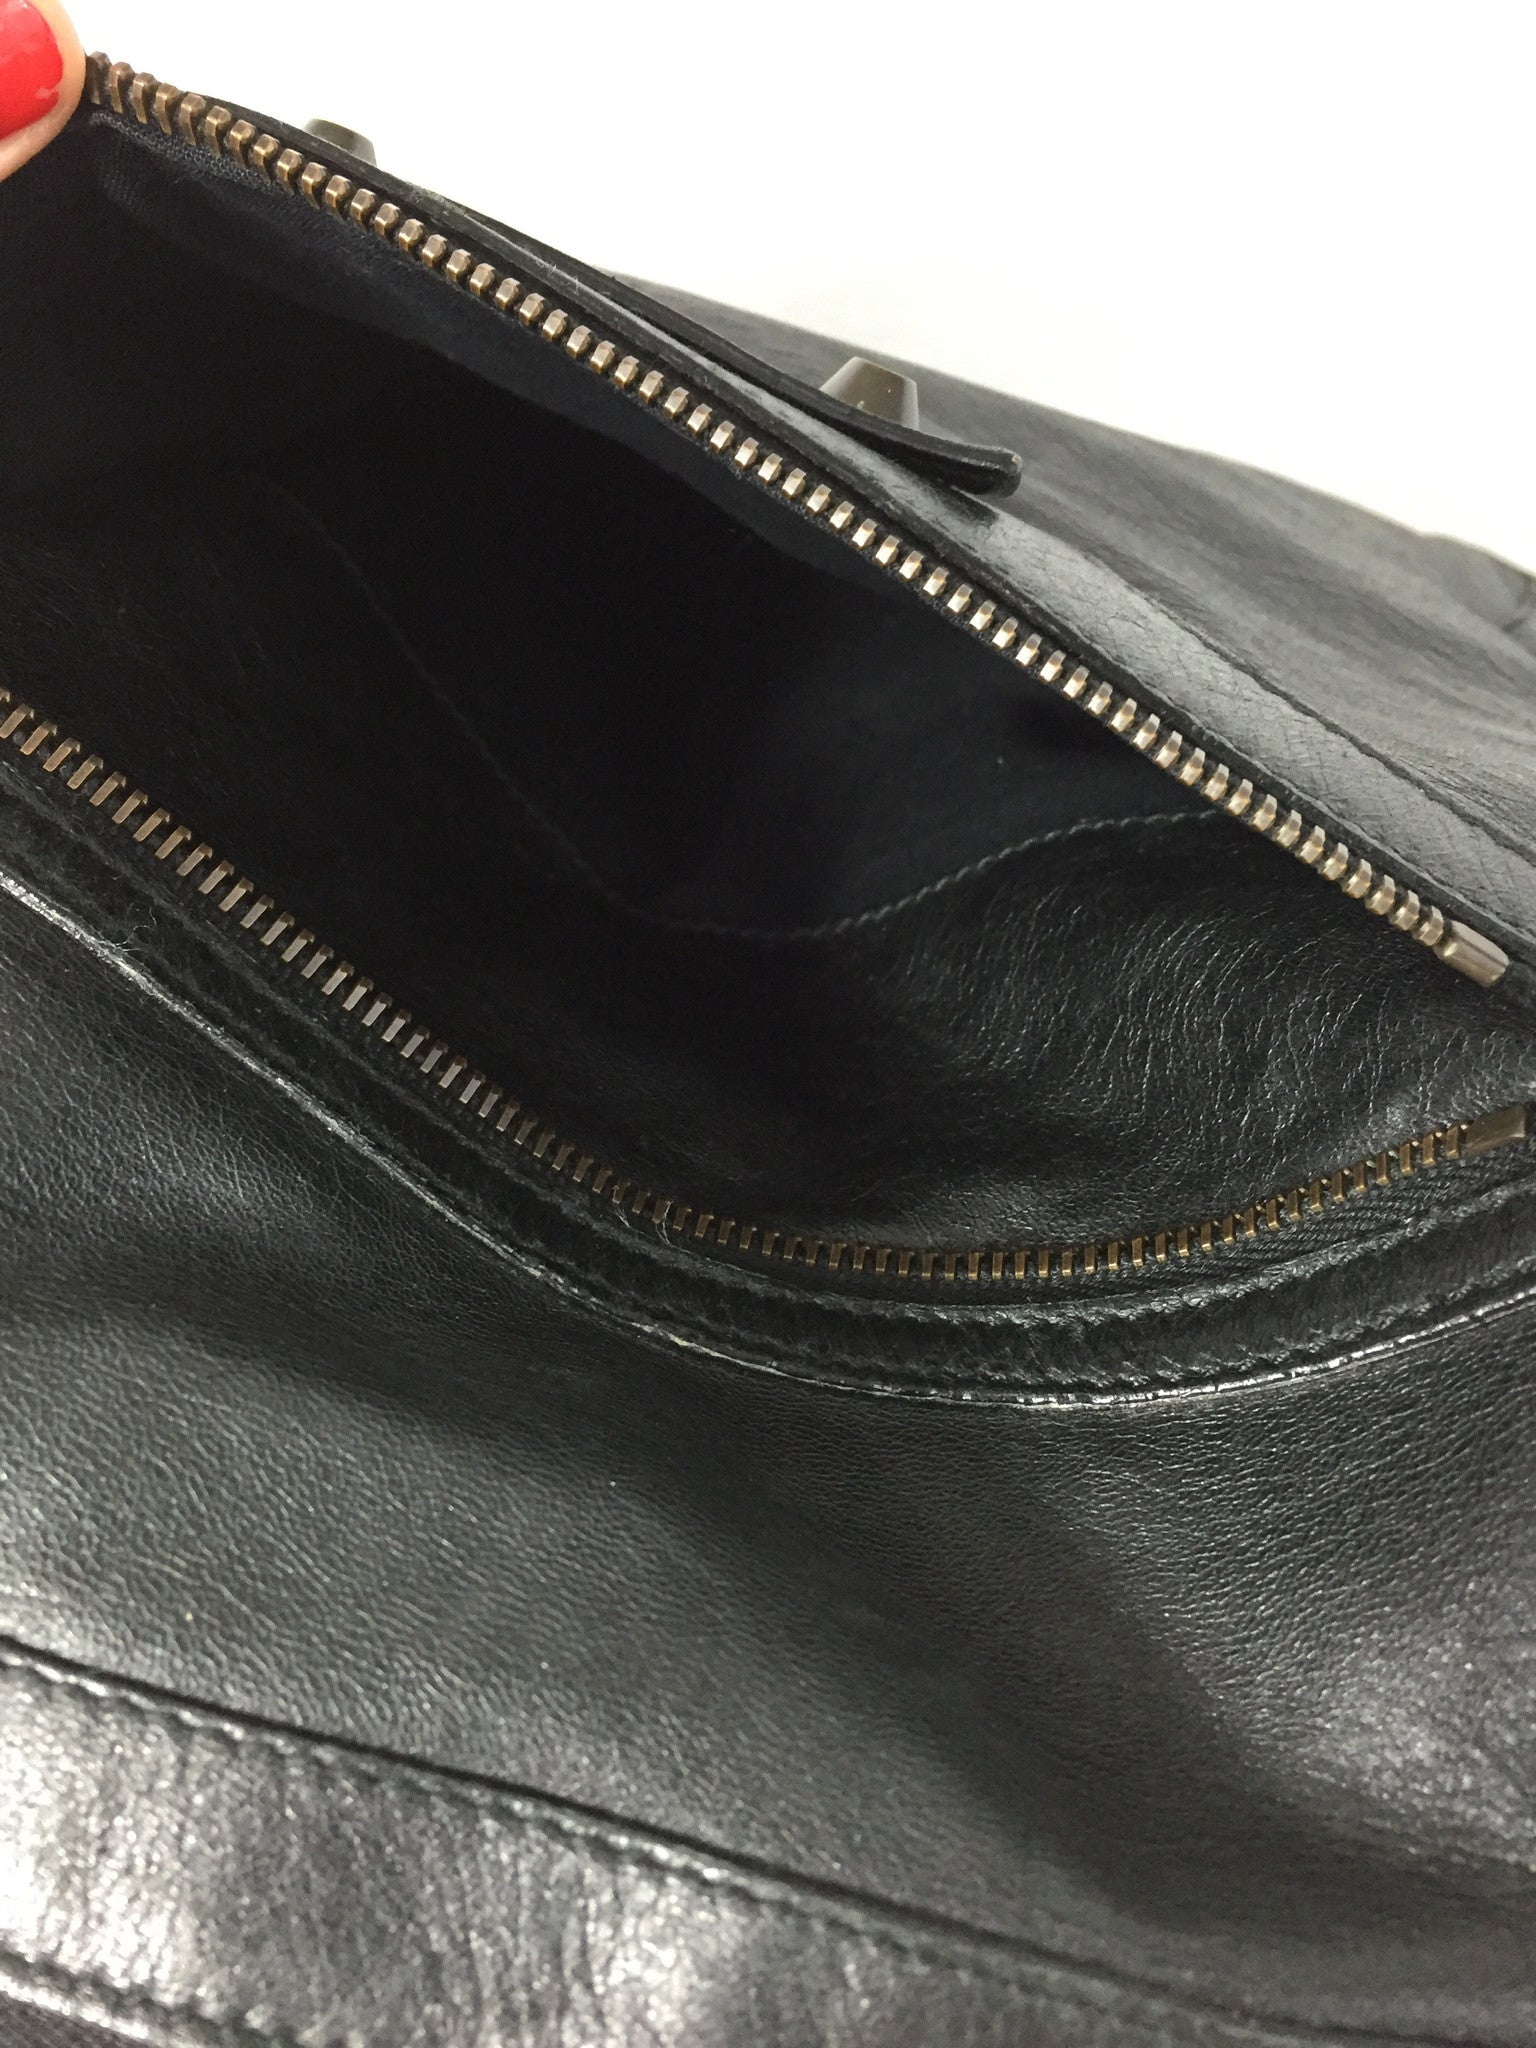 BALENCIAGA Black Leather Shoulder Hobo Bag